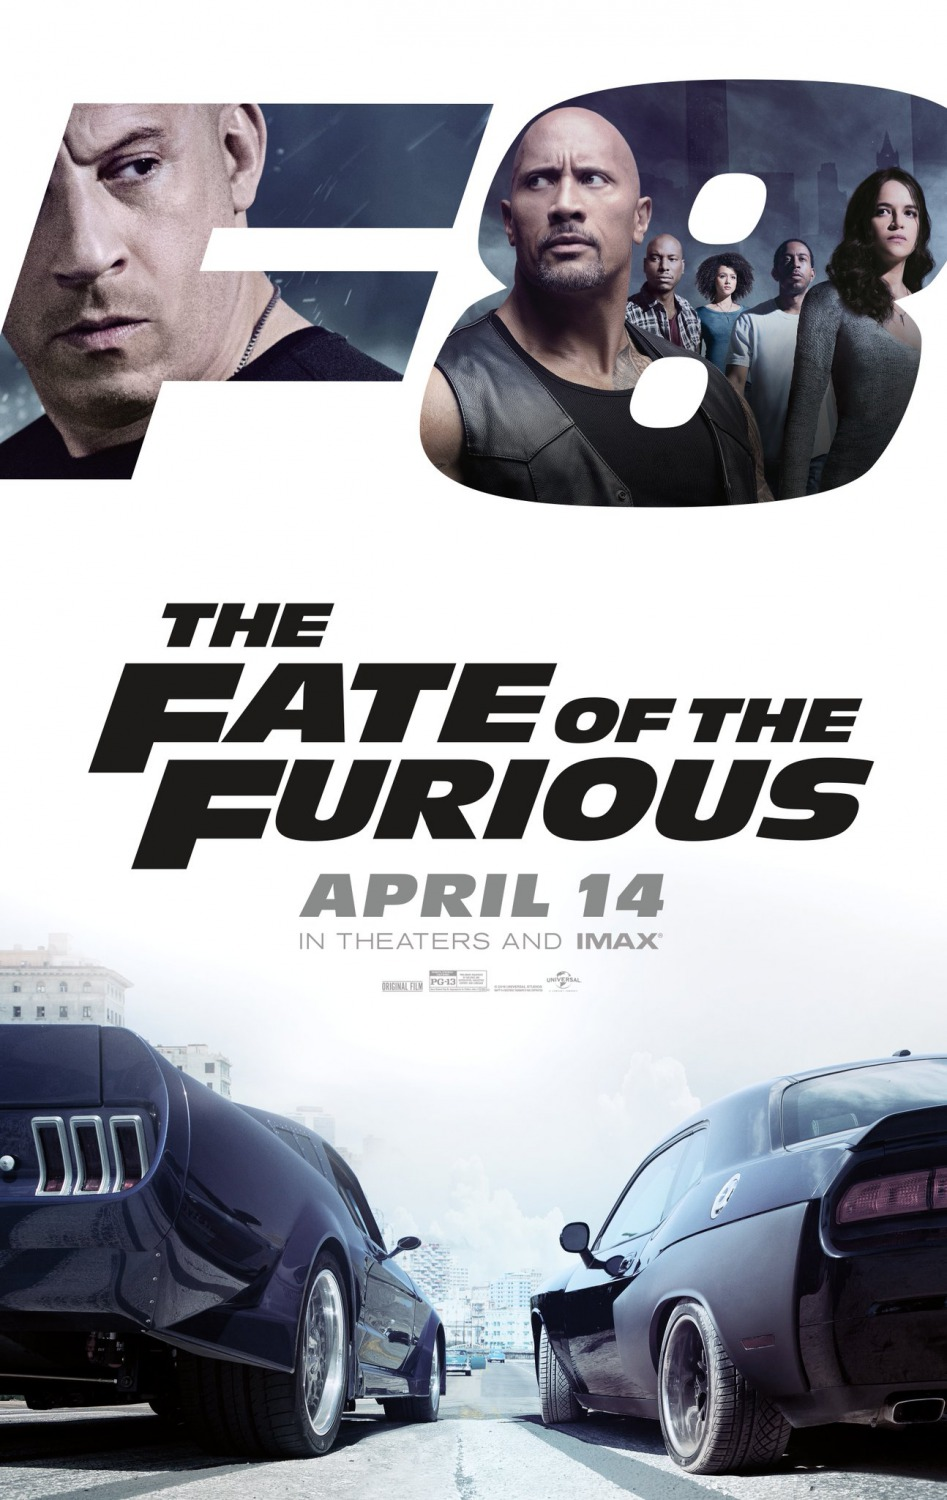 Permalink to The Fate of the Furious (2017) HDTS Subtitle Indonesia